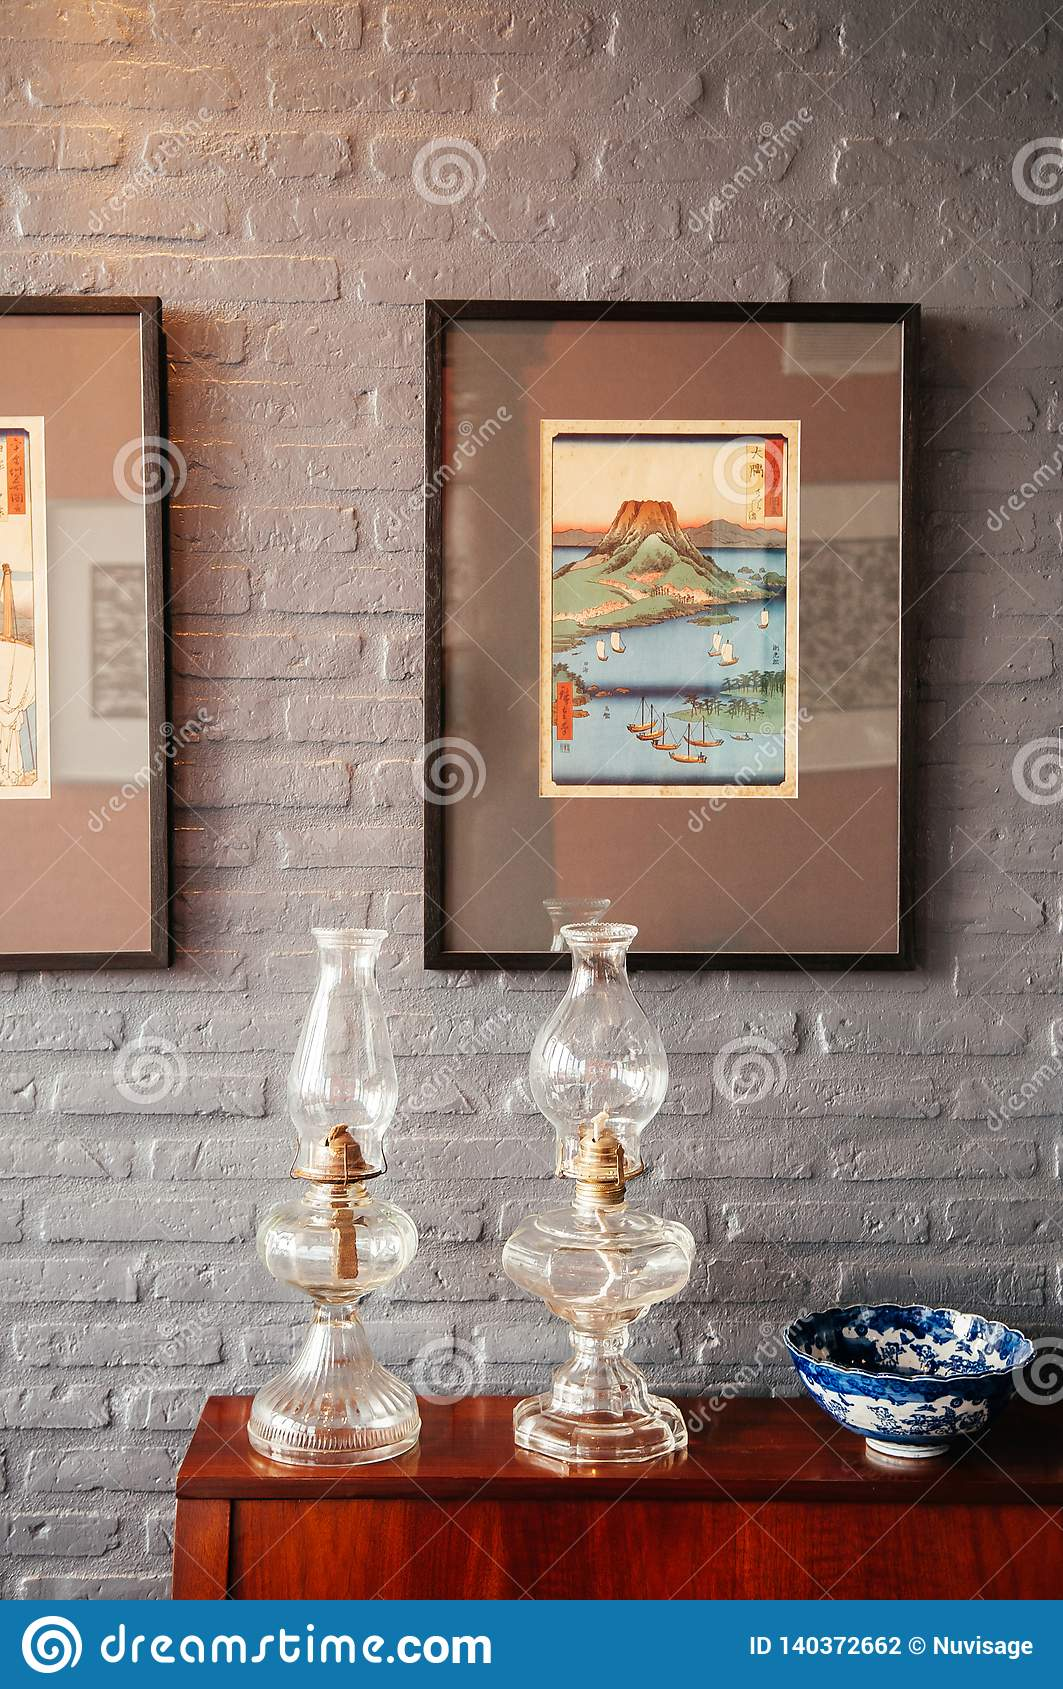 Vintage Glass Kerosene Lamp And Antique Ceramic Pedestal Tray With Brick Wall Background Editorial Photography Image Of Texture Brick 140372662